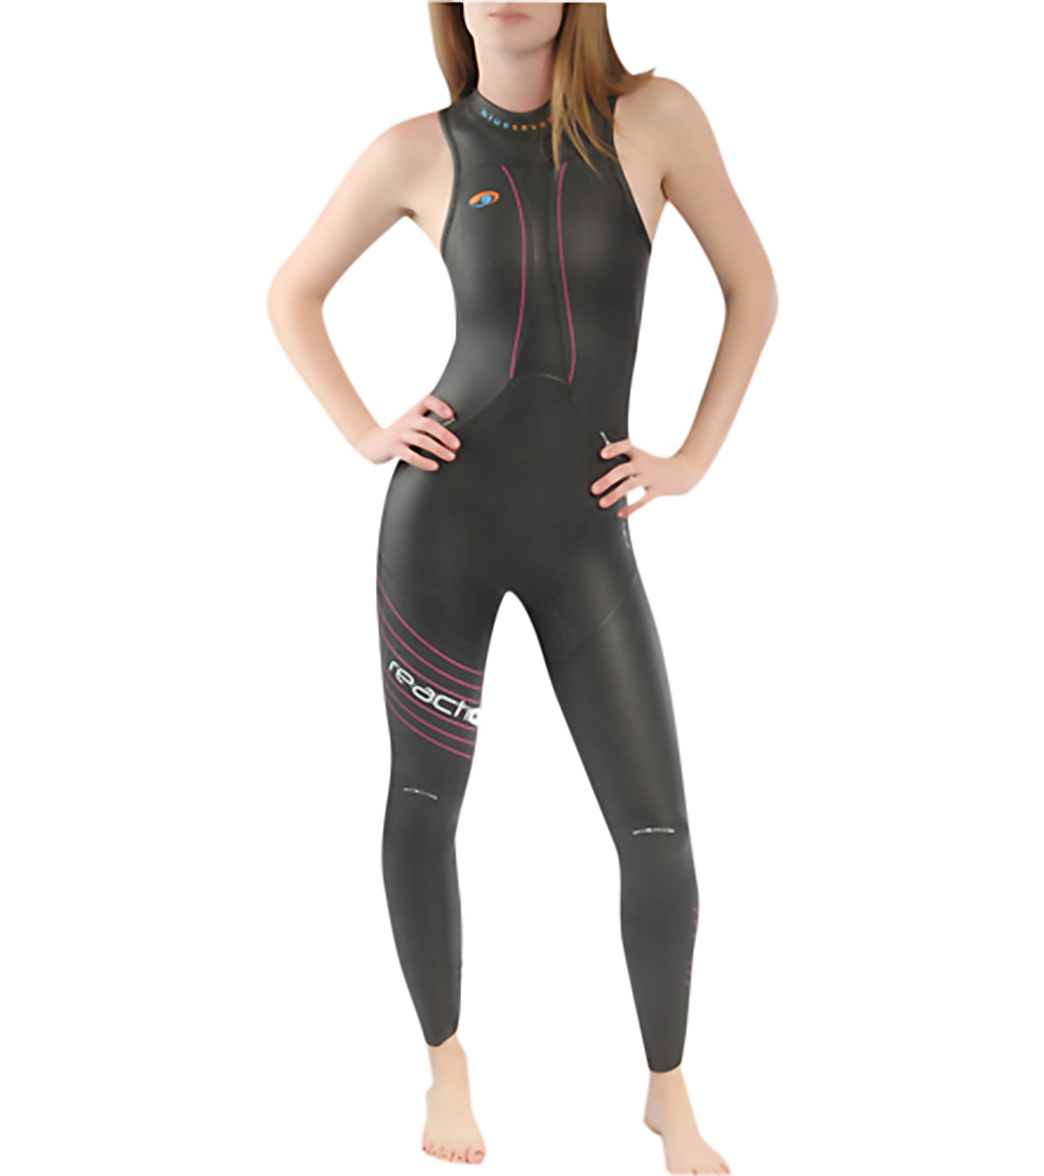 c39acce9ff7765 Blueseventy Women s Reaction Sleeveless Wetsuit at SwimOutlet.com ...